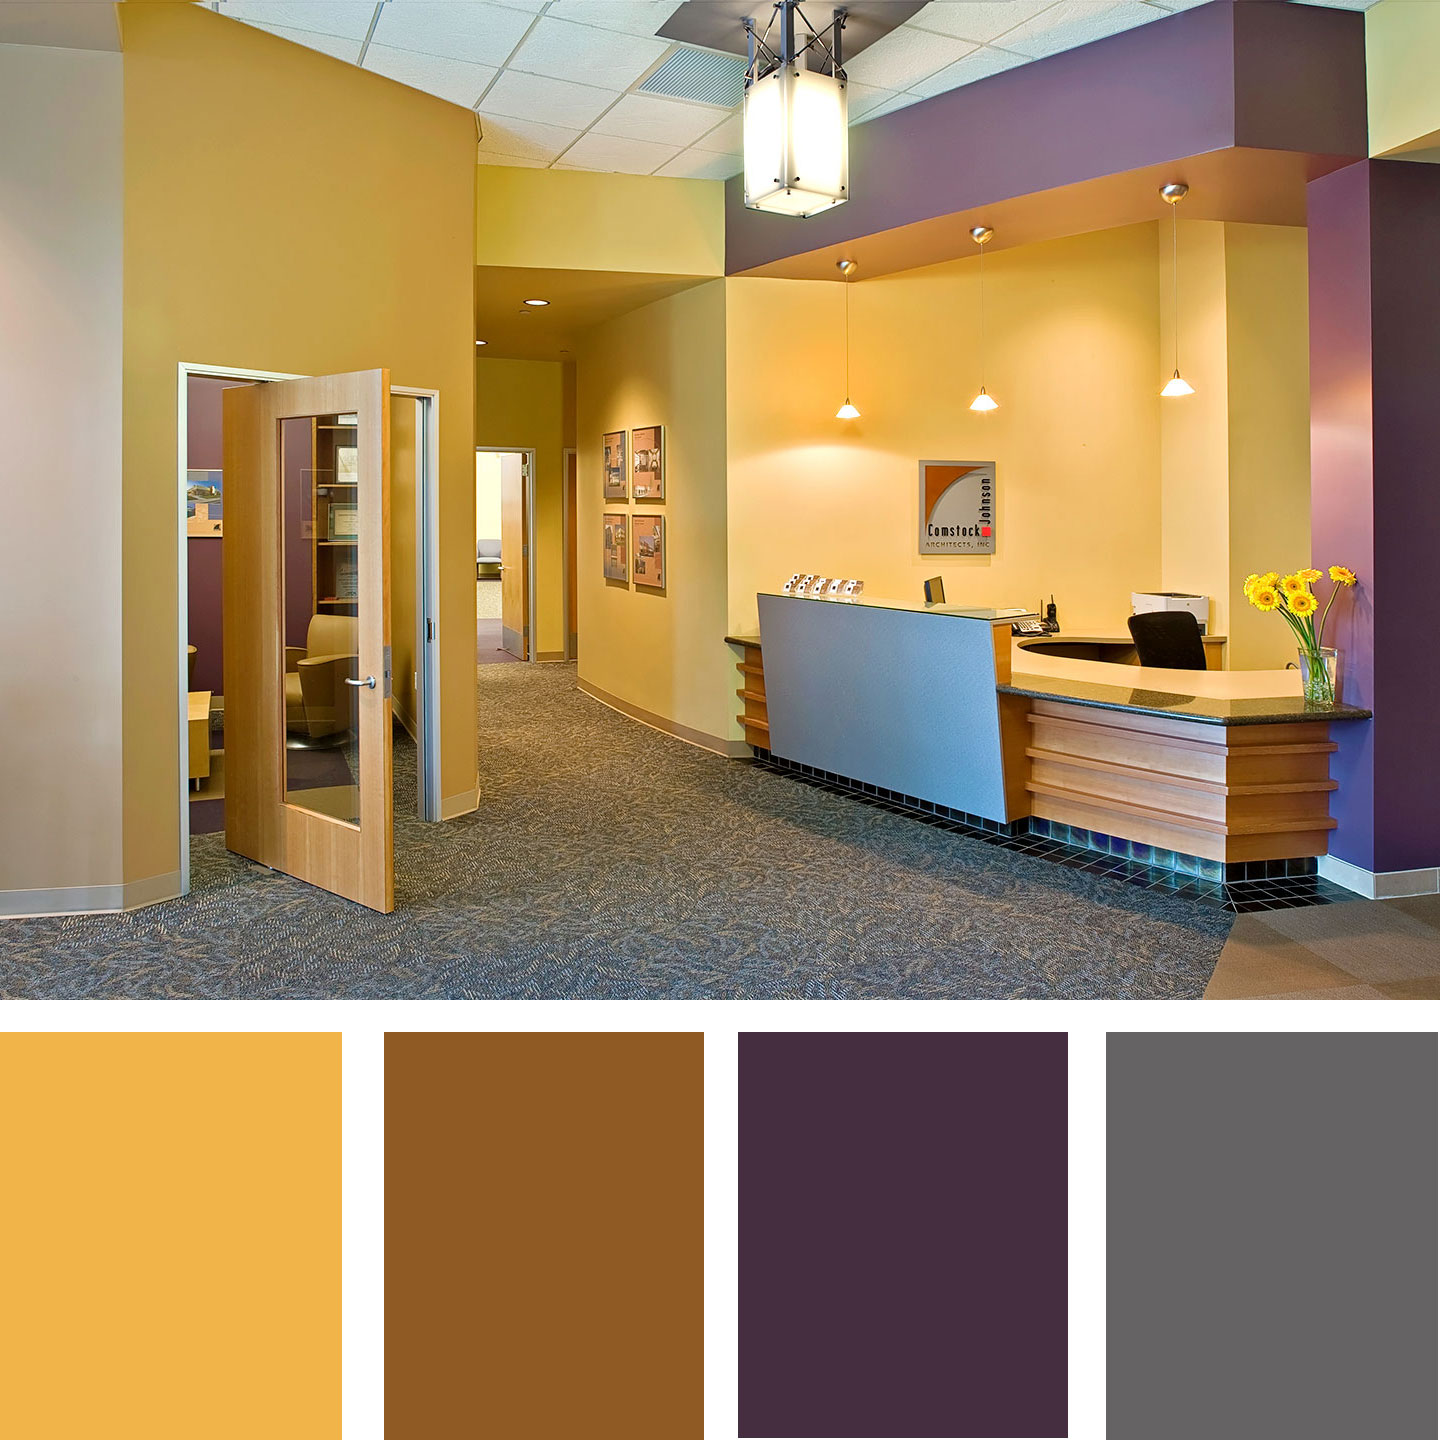 How To Pick A Color Scheme For Your Workplace Comstock Johnson Architects